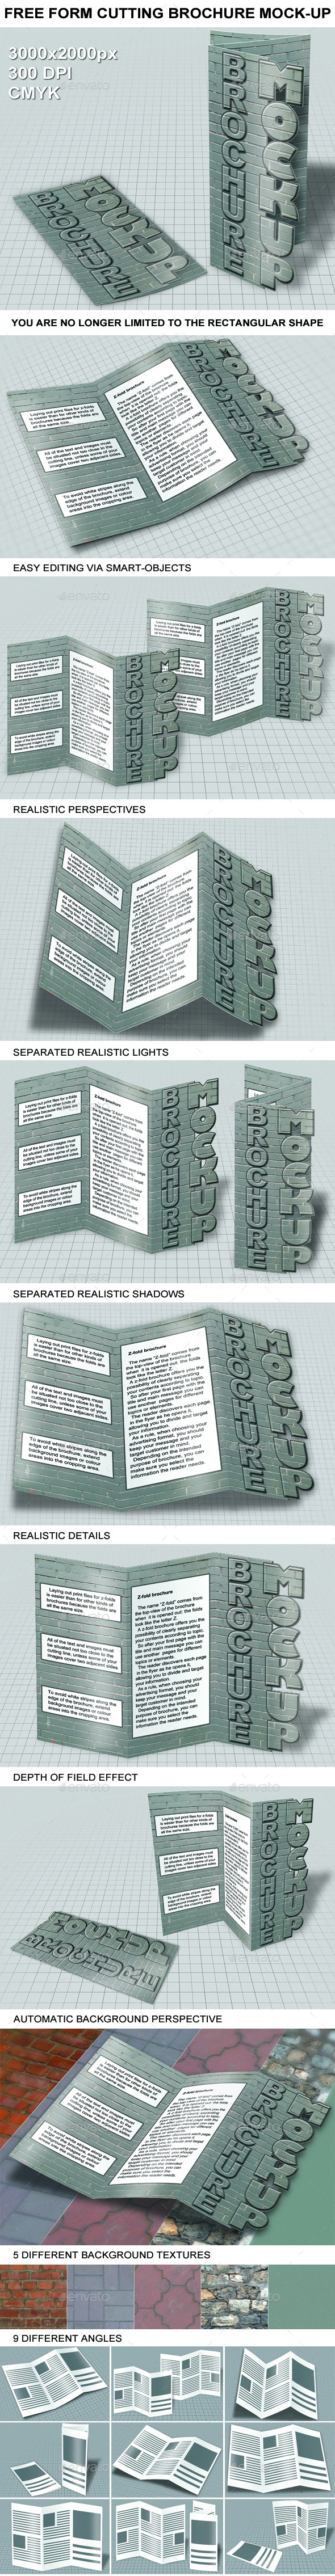 GraphicRiver Free Form Cutting Brochure Mockup 10685855